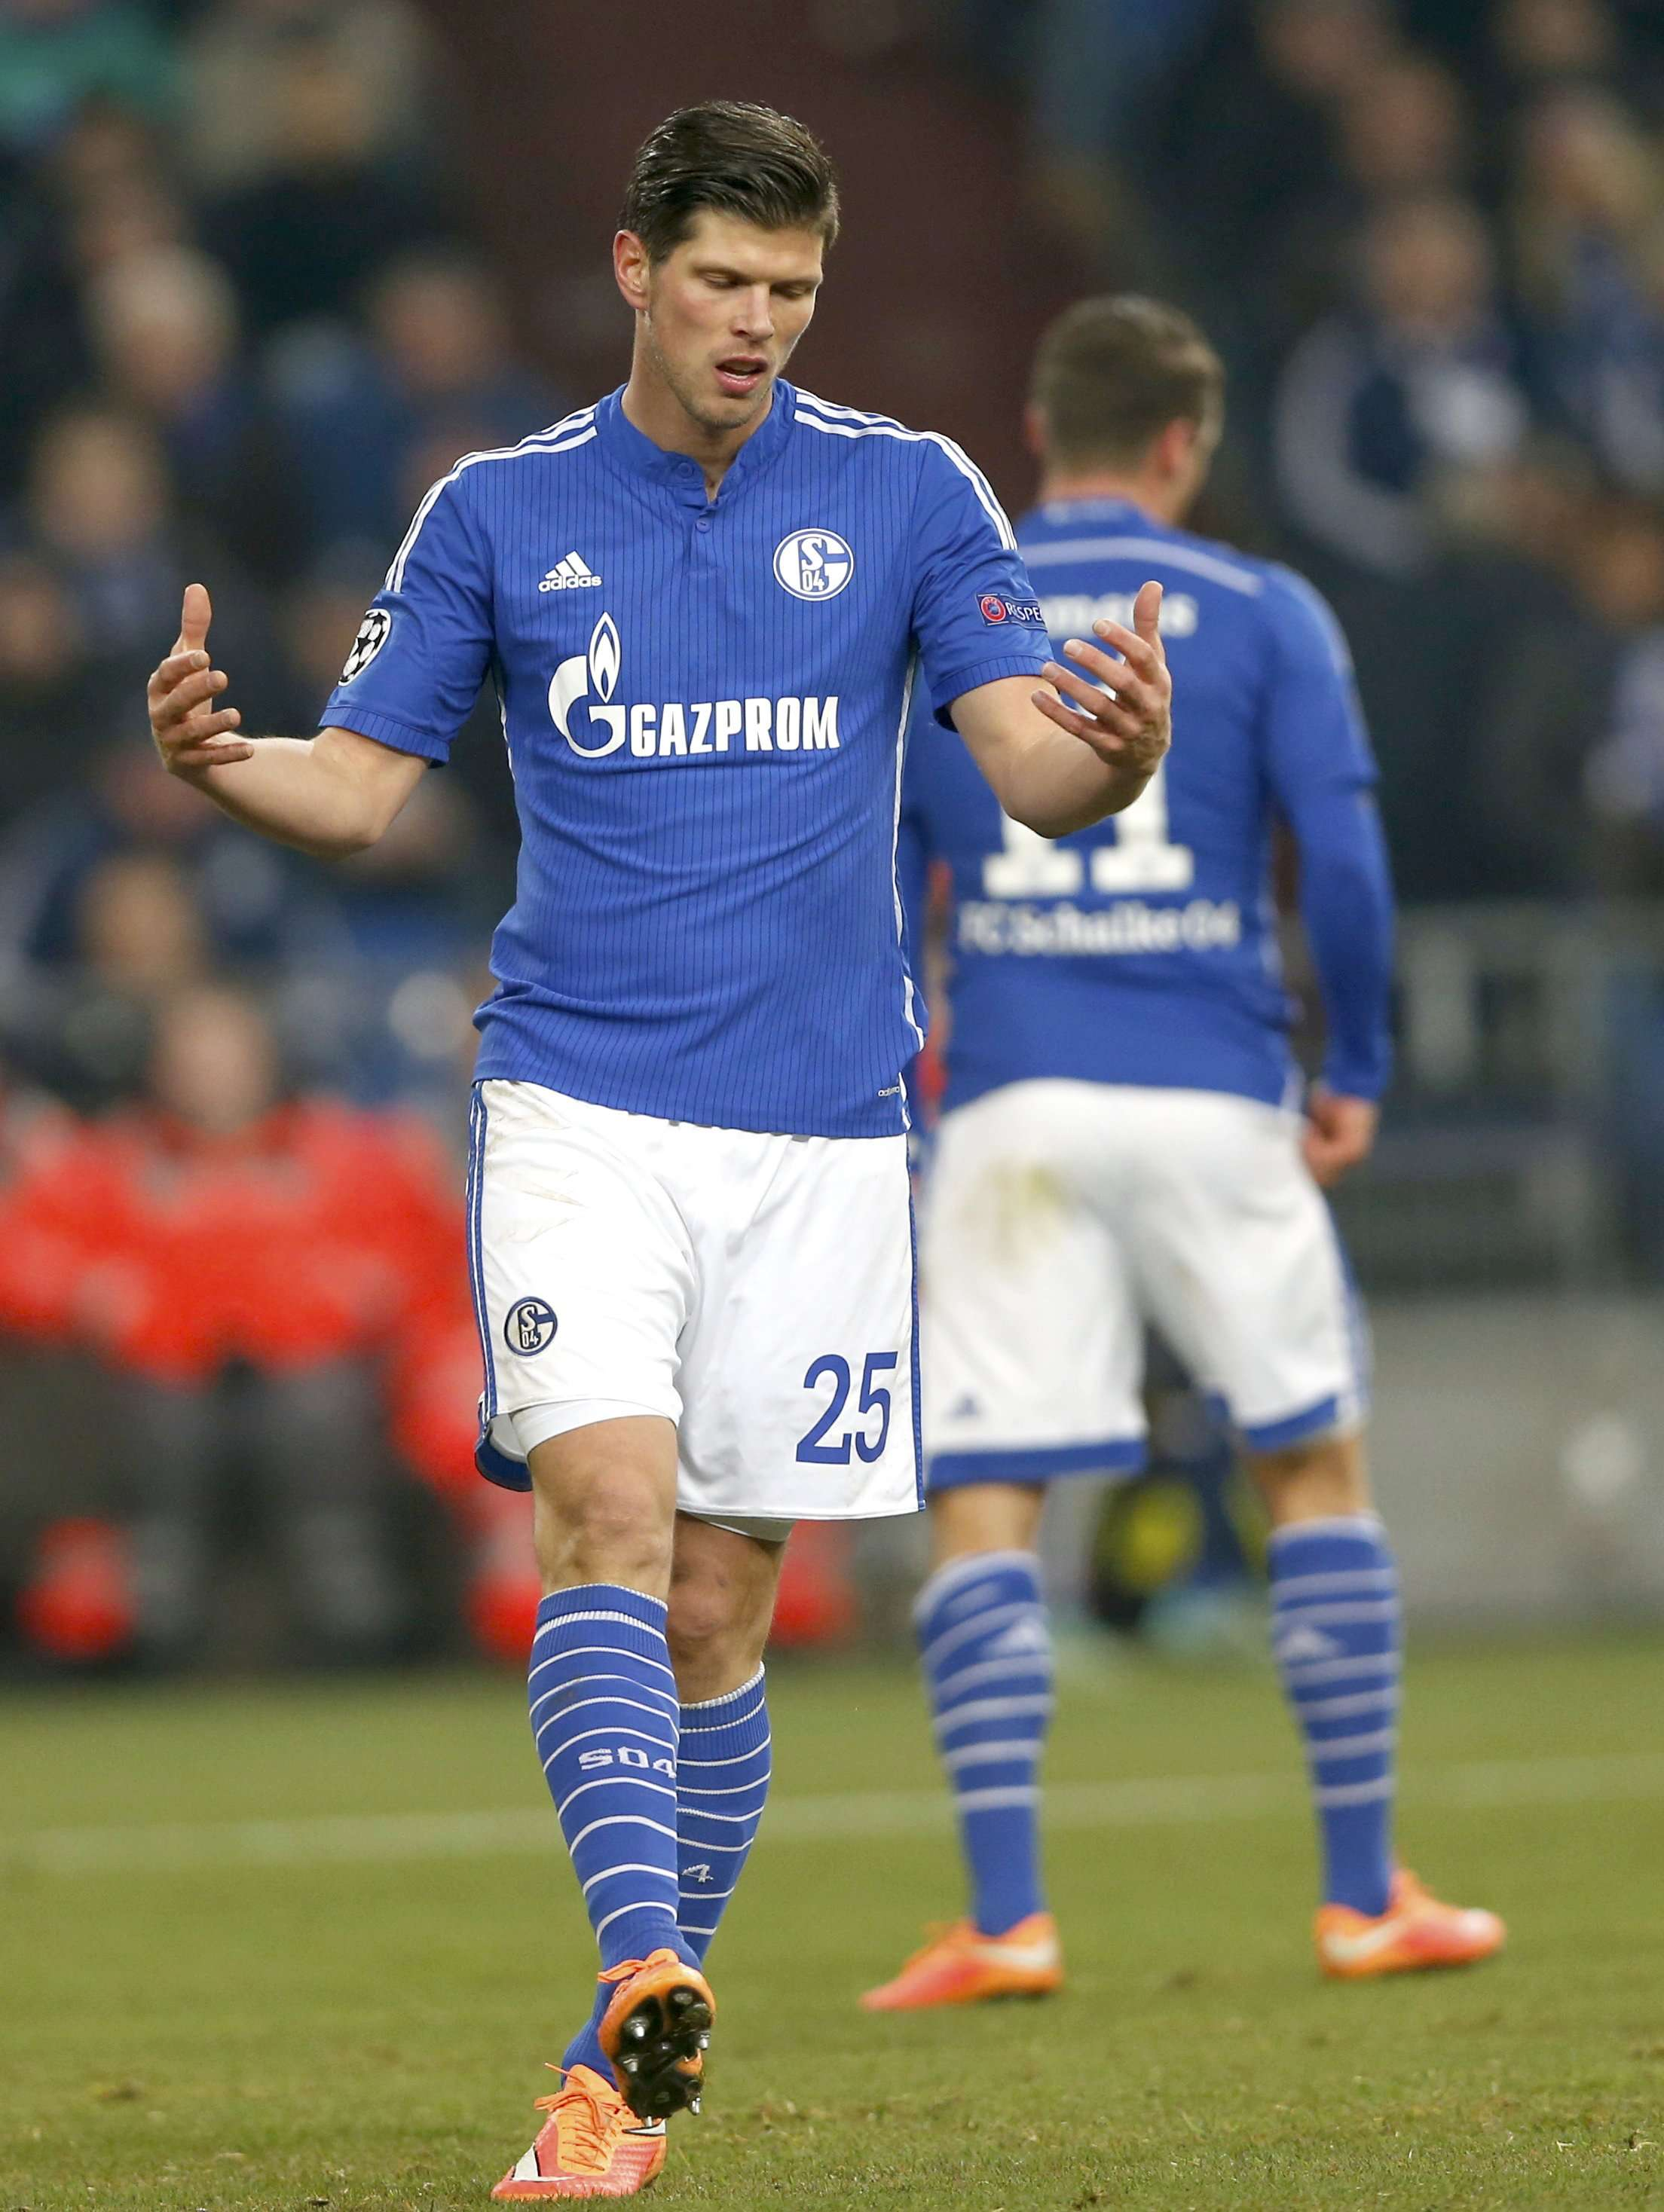 Schalke 04's Klaas-Jan Huntelaar reacts during the Champions League group G soccer match against Chelsea in Gelsenkirchen November 25, 2014. REUTERS/Wolfgang Rattay (GERMANY - Tags: SPORT SOCCER) Foto: WOLFGANG RATTAY/REUTERS